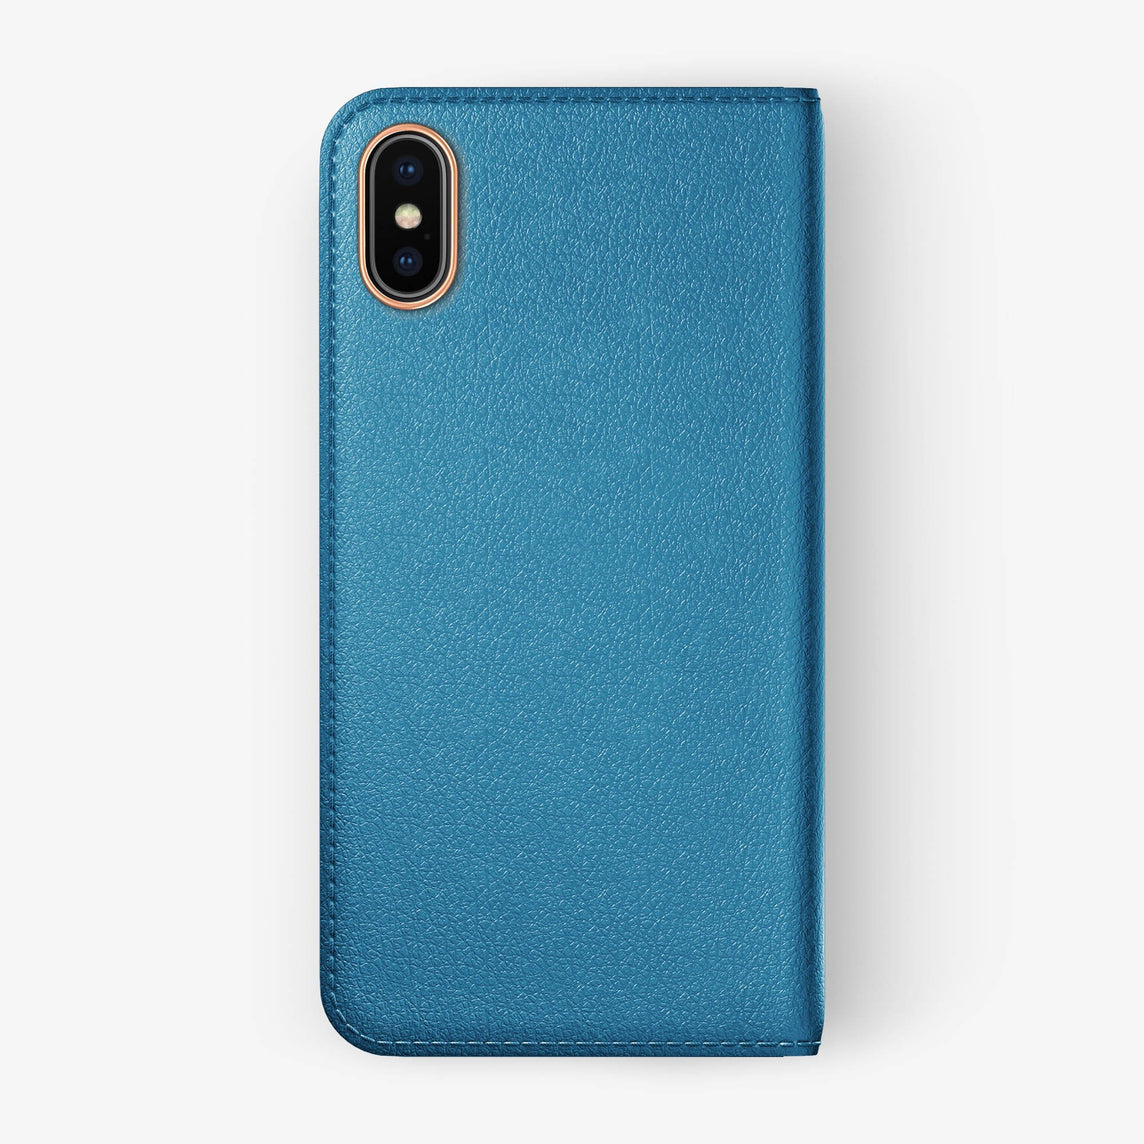 Peony Blue Calfskin iPhone Folio Case for iPhone X finishing rose gold - Hadoro Luxury Cases img5